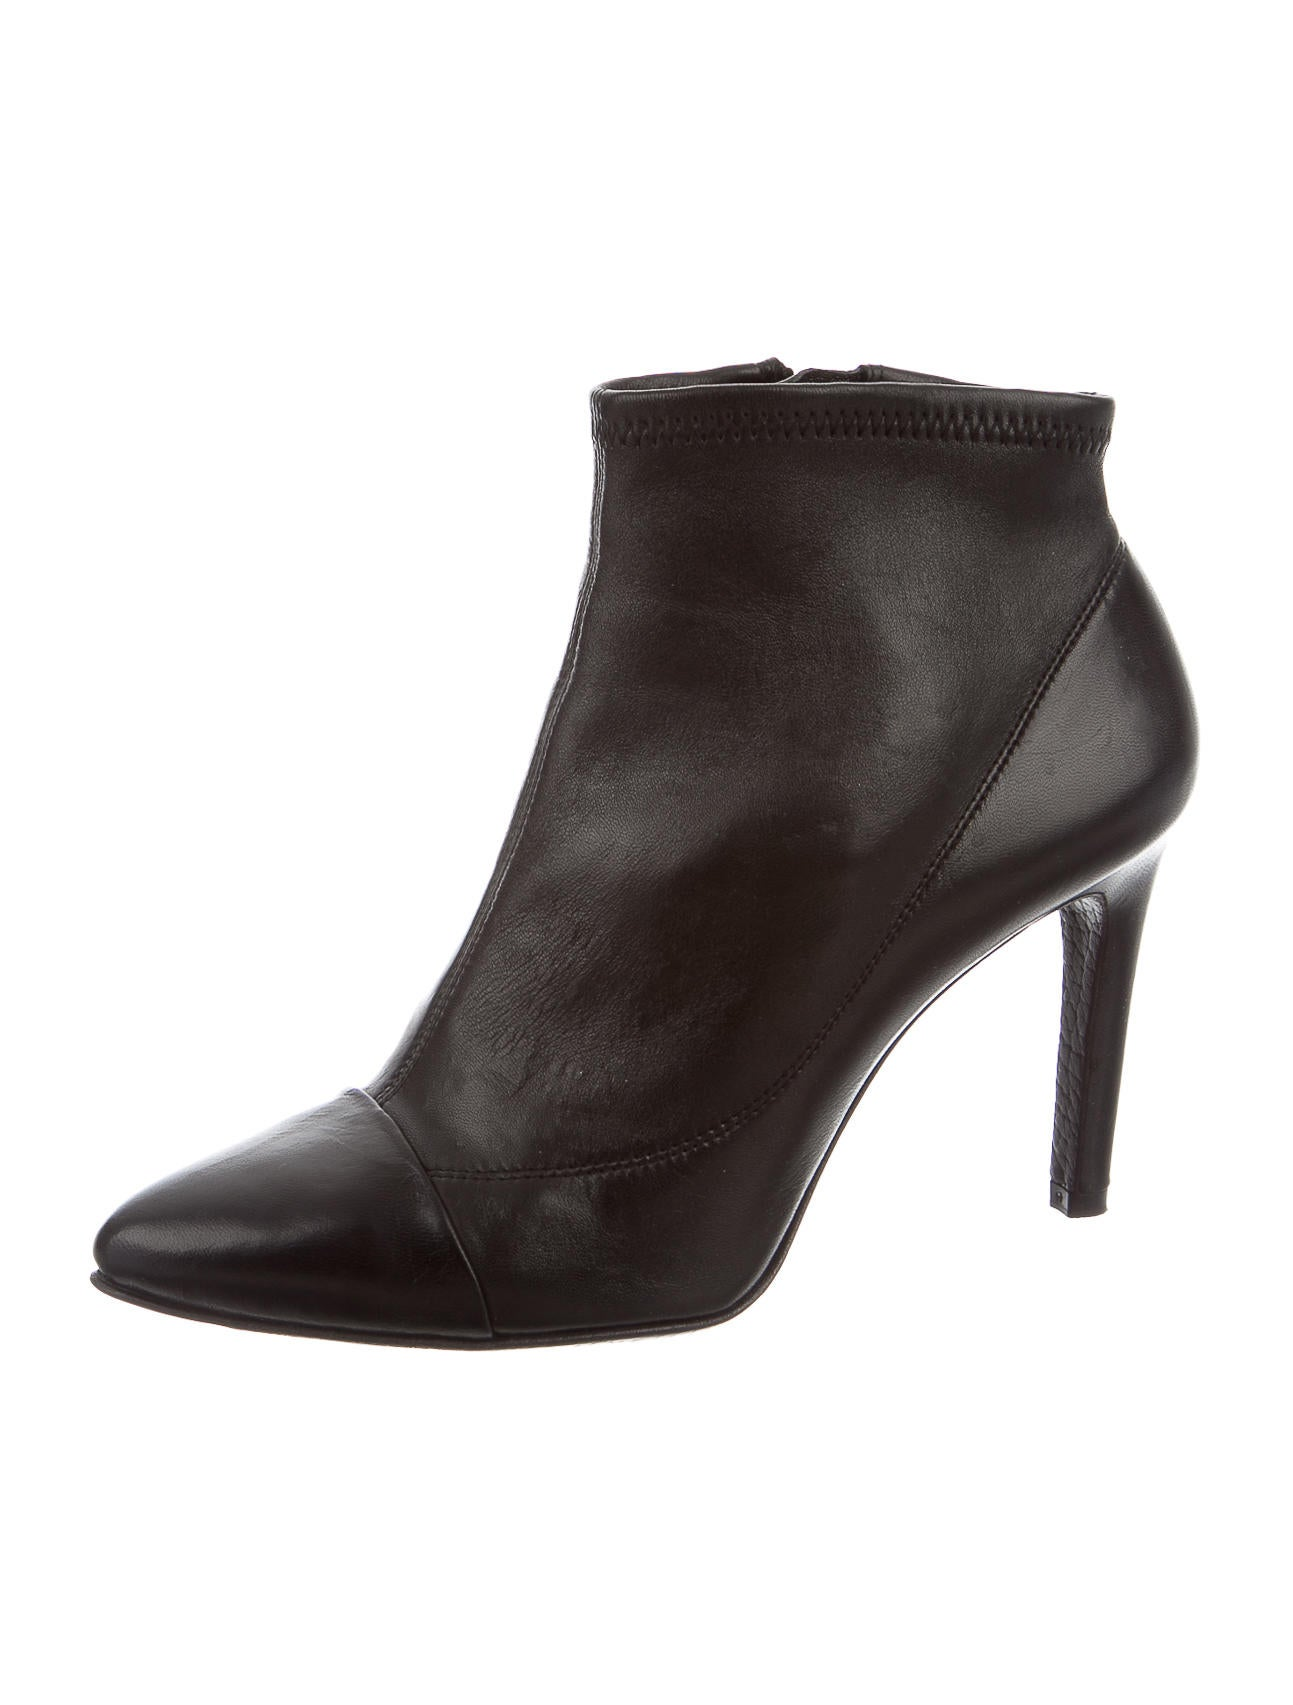 pedro garcia leather pointed toe ankle boots shoes